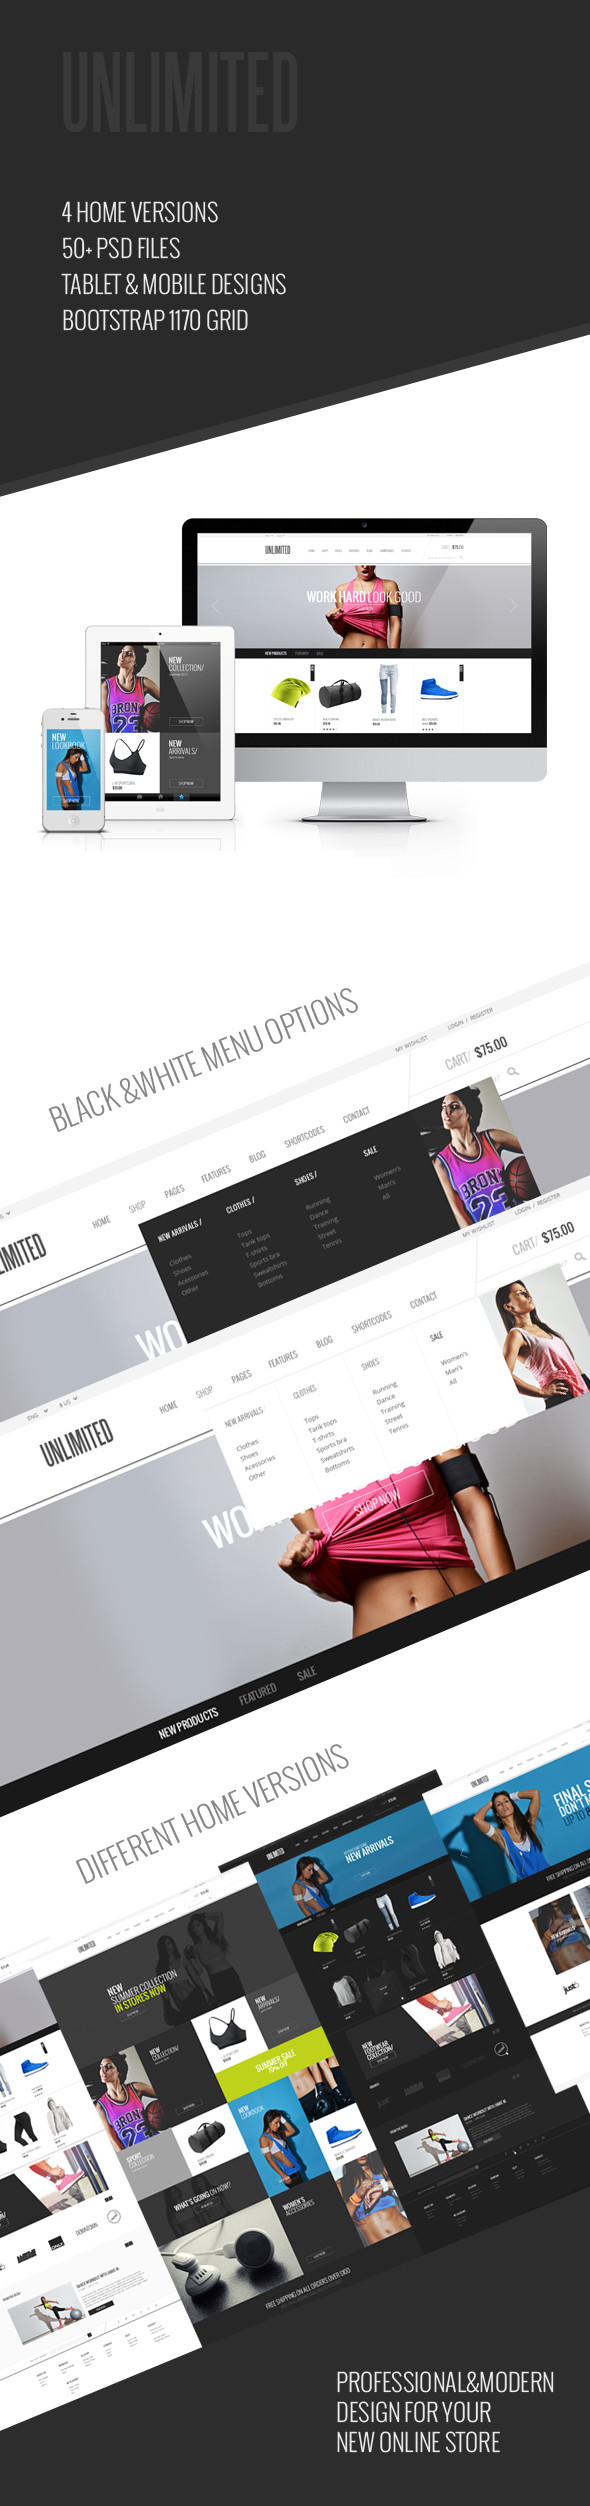 Unlimited - eCommerce PSD Template - 1